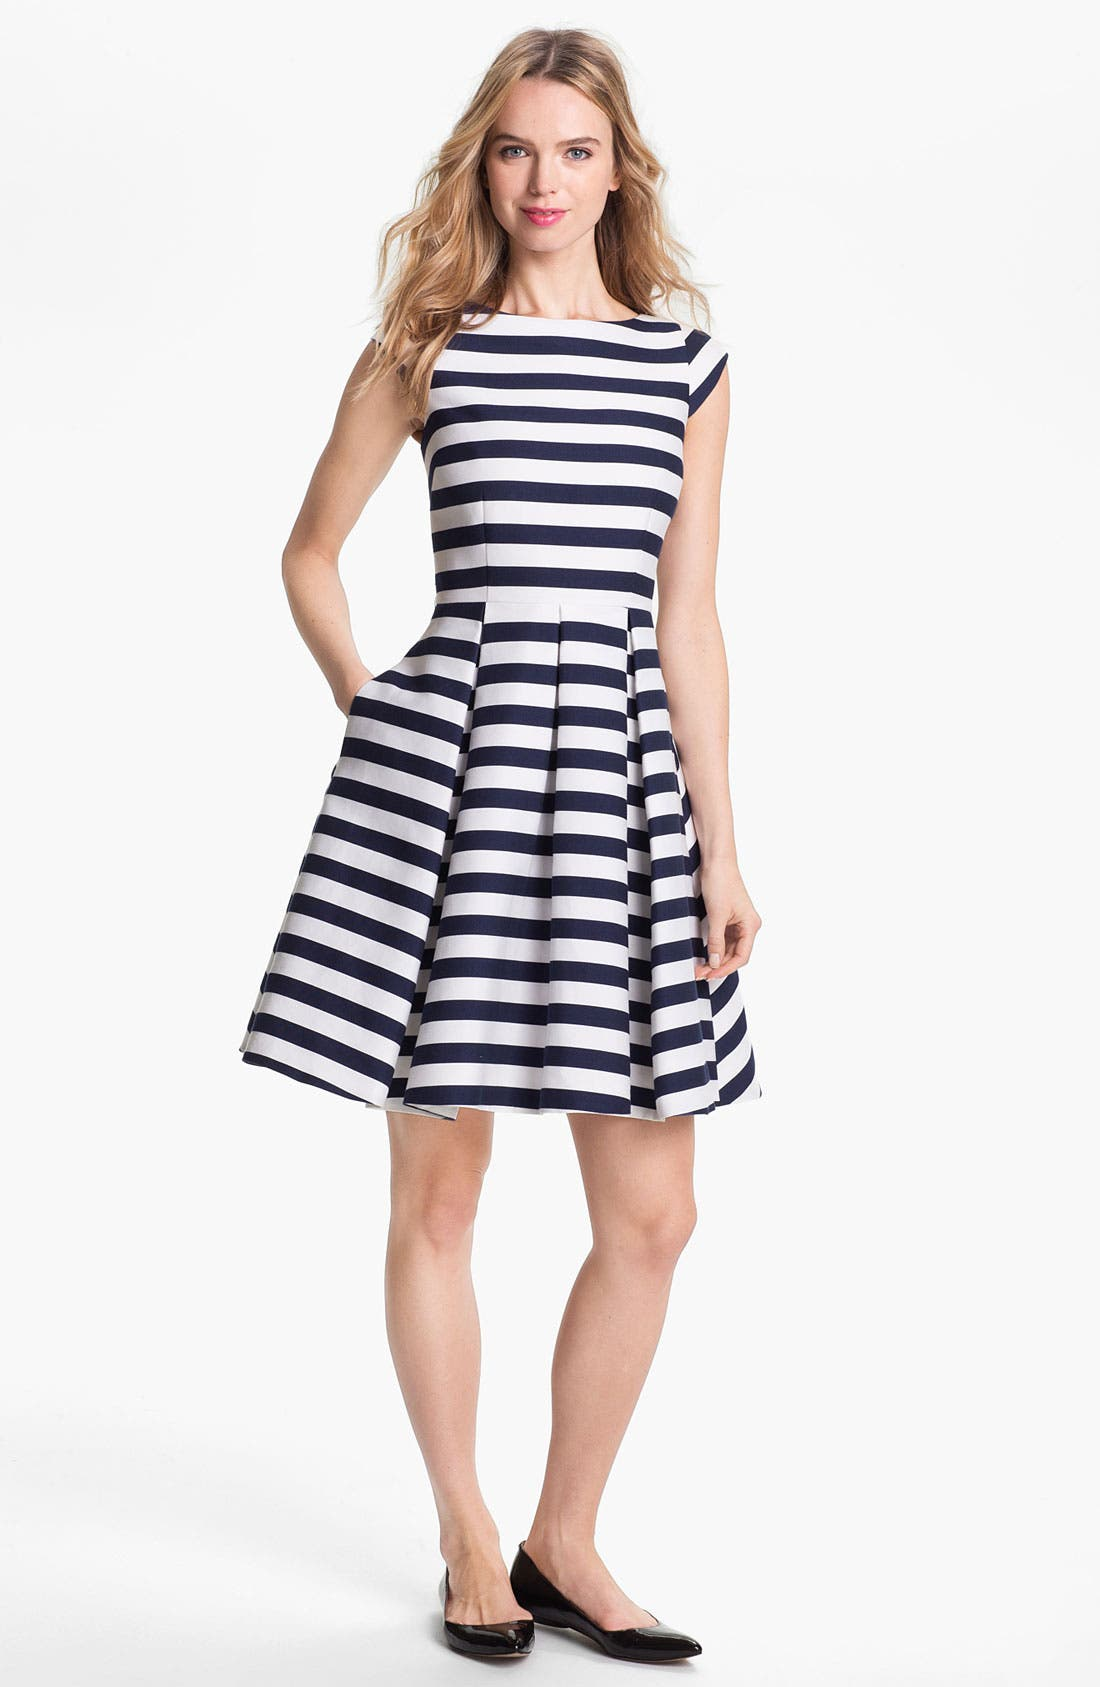 Main Image - kate spade new york 'mariella' cotton blend fit & flare dress